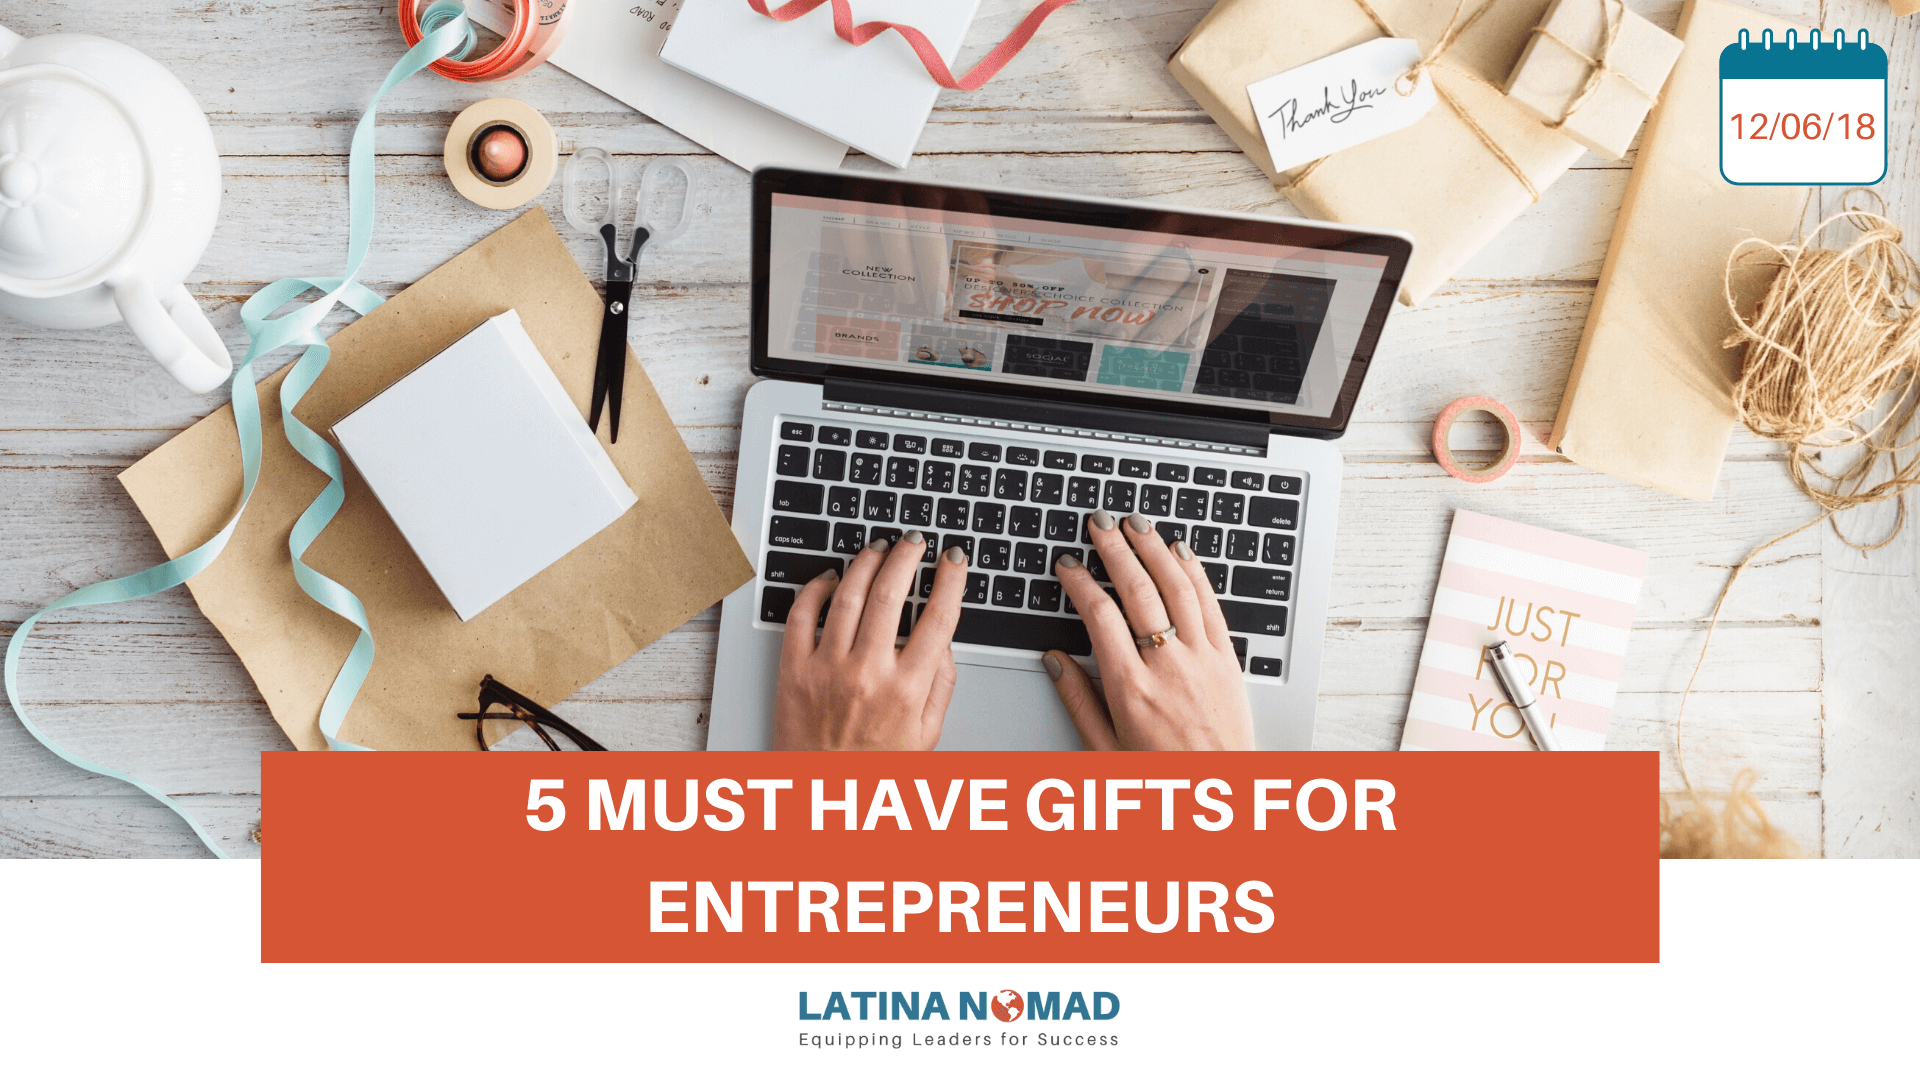 5 MUST HAVE GIFTS